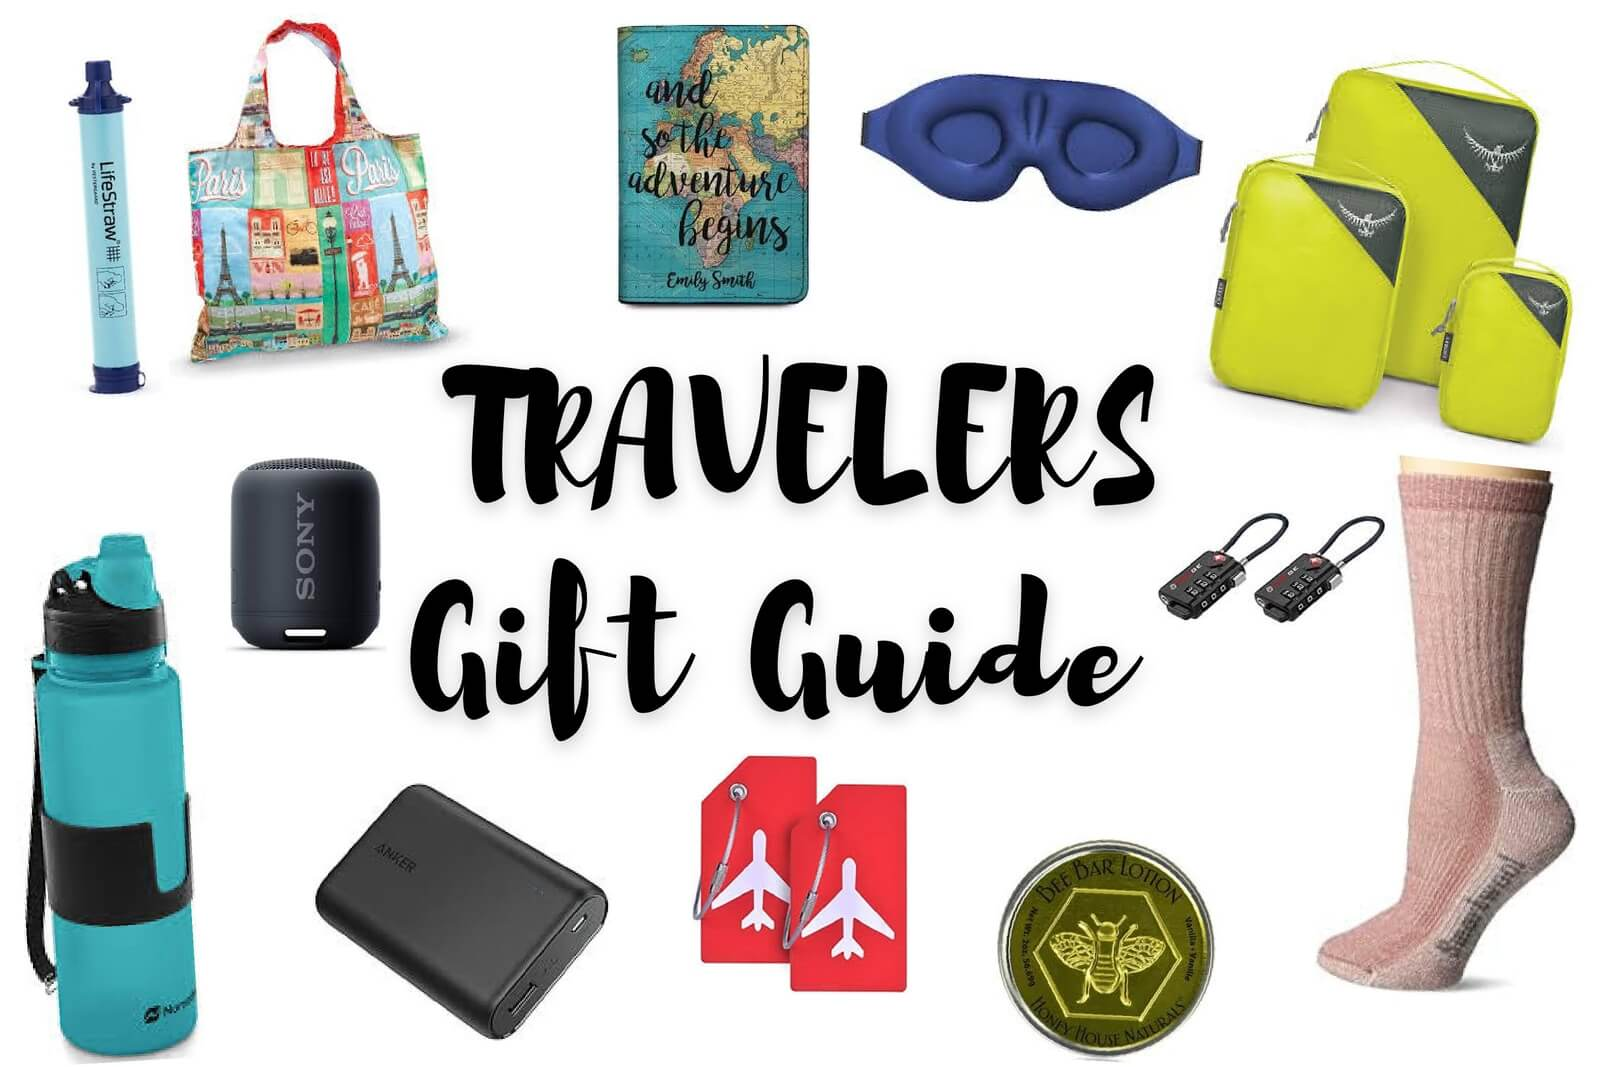 Travel Gift Guide: The Best Holiday Gift Ideas For A Traveler Where Are Those Morgans